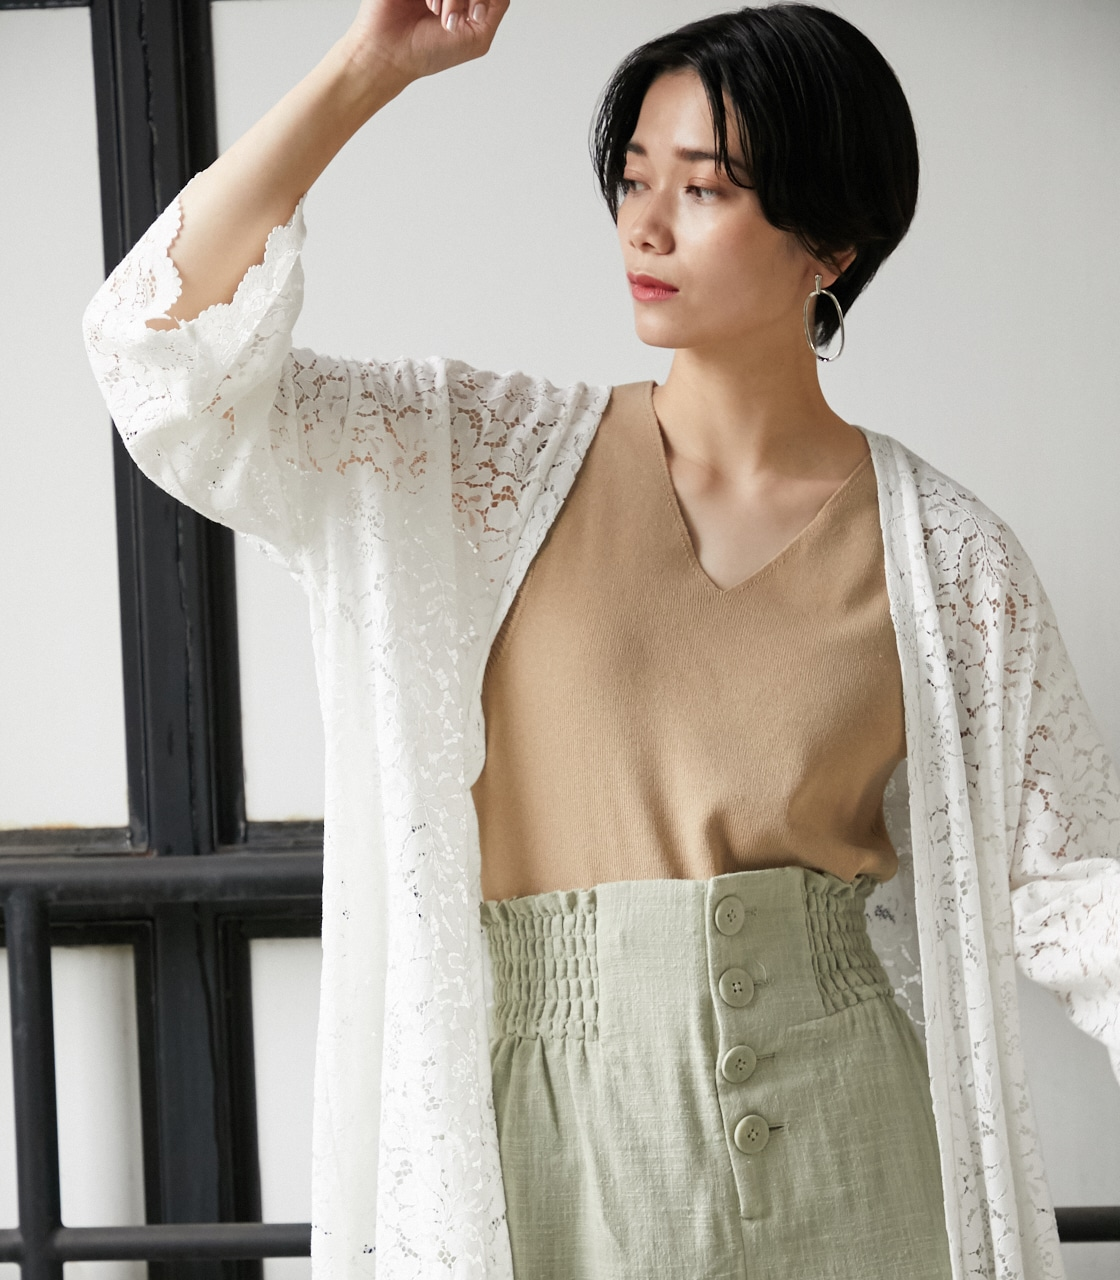 SCALLOP LACE LONG GOWN/スカロップレースロングガウン 詳細画像 O/WHT 13